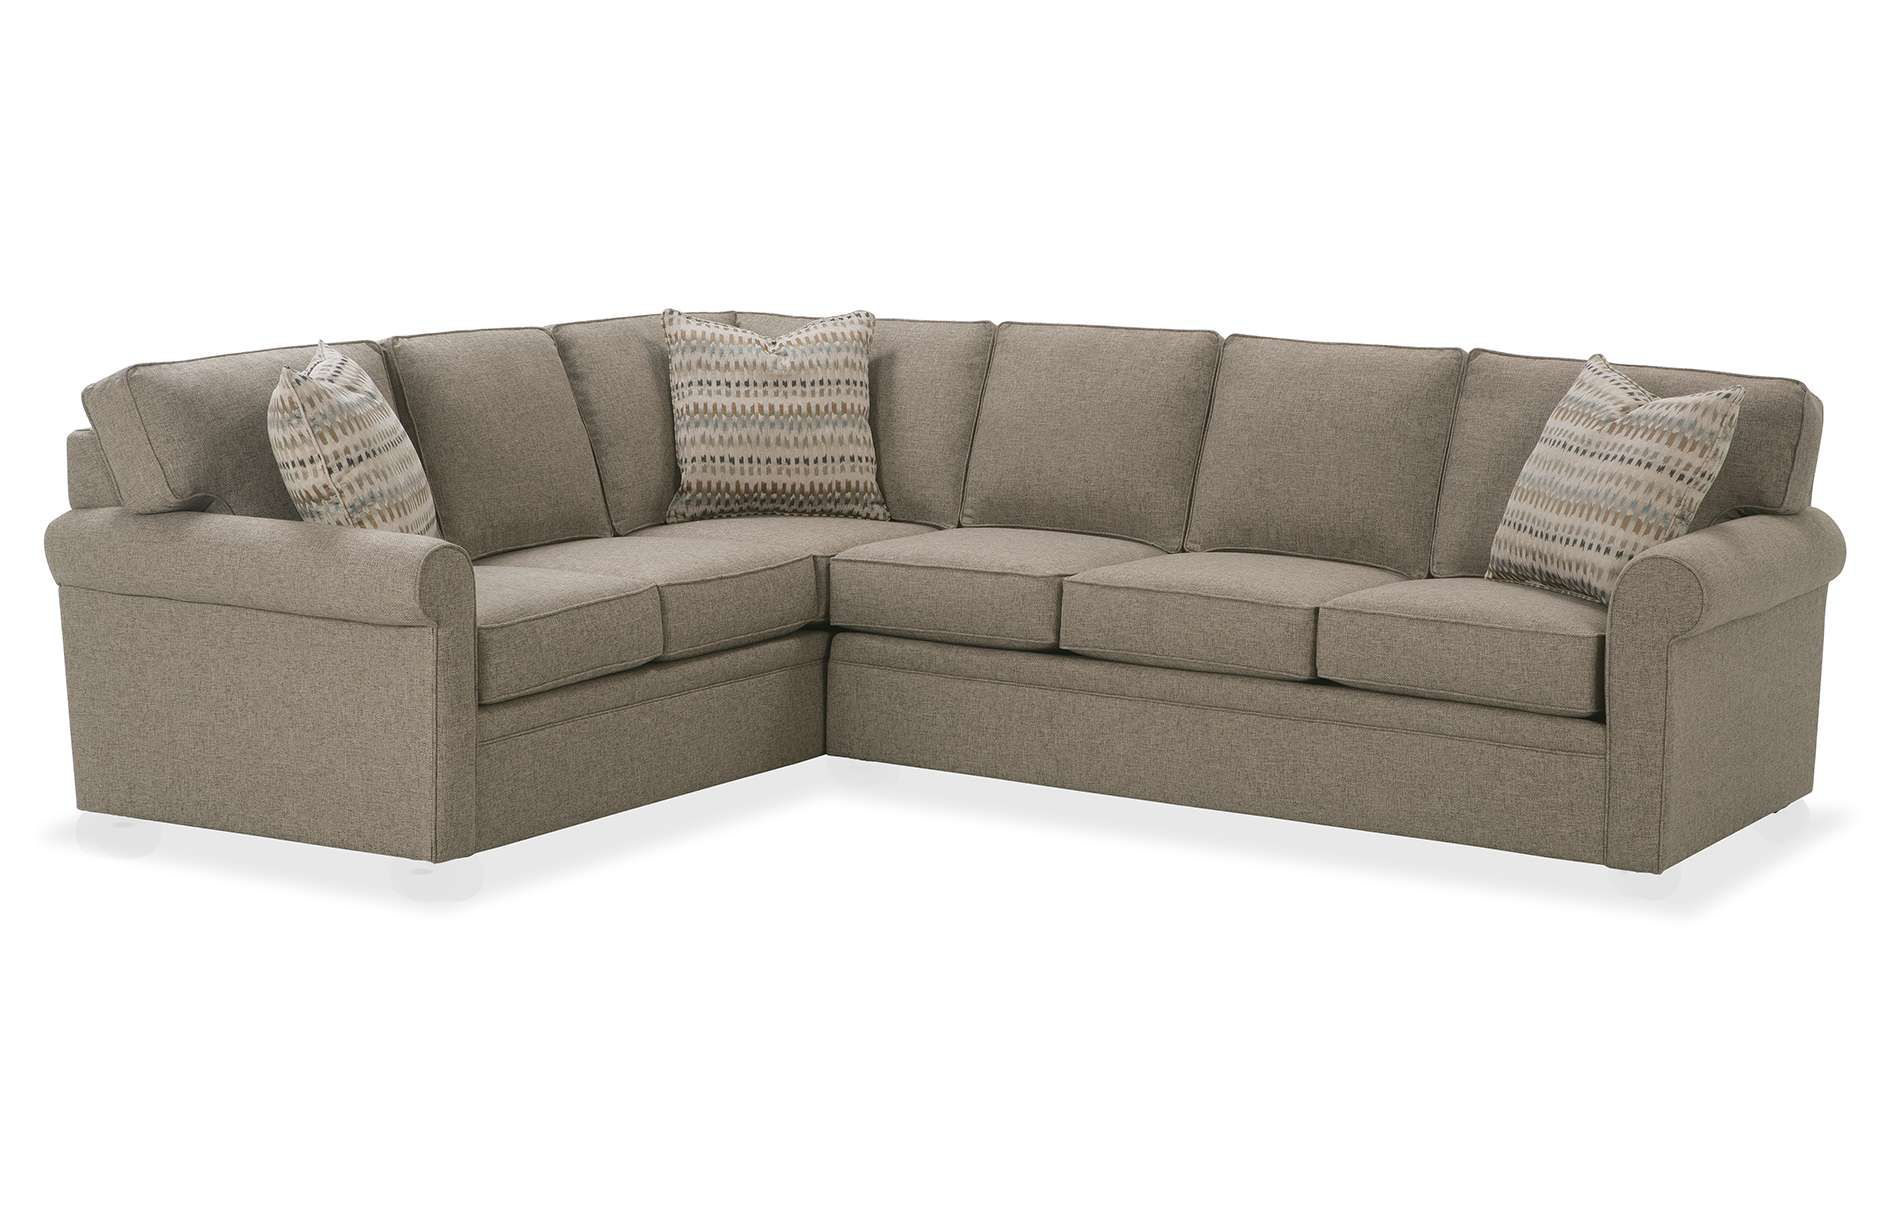 94 Quot X 94 Quot 3 Pieces 40 Quot Deep The Brentwood Sectional From